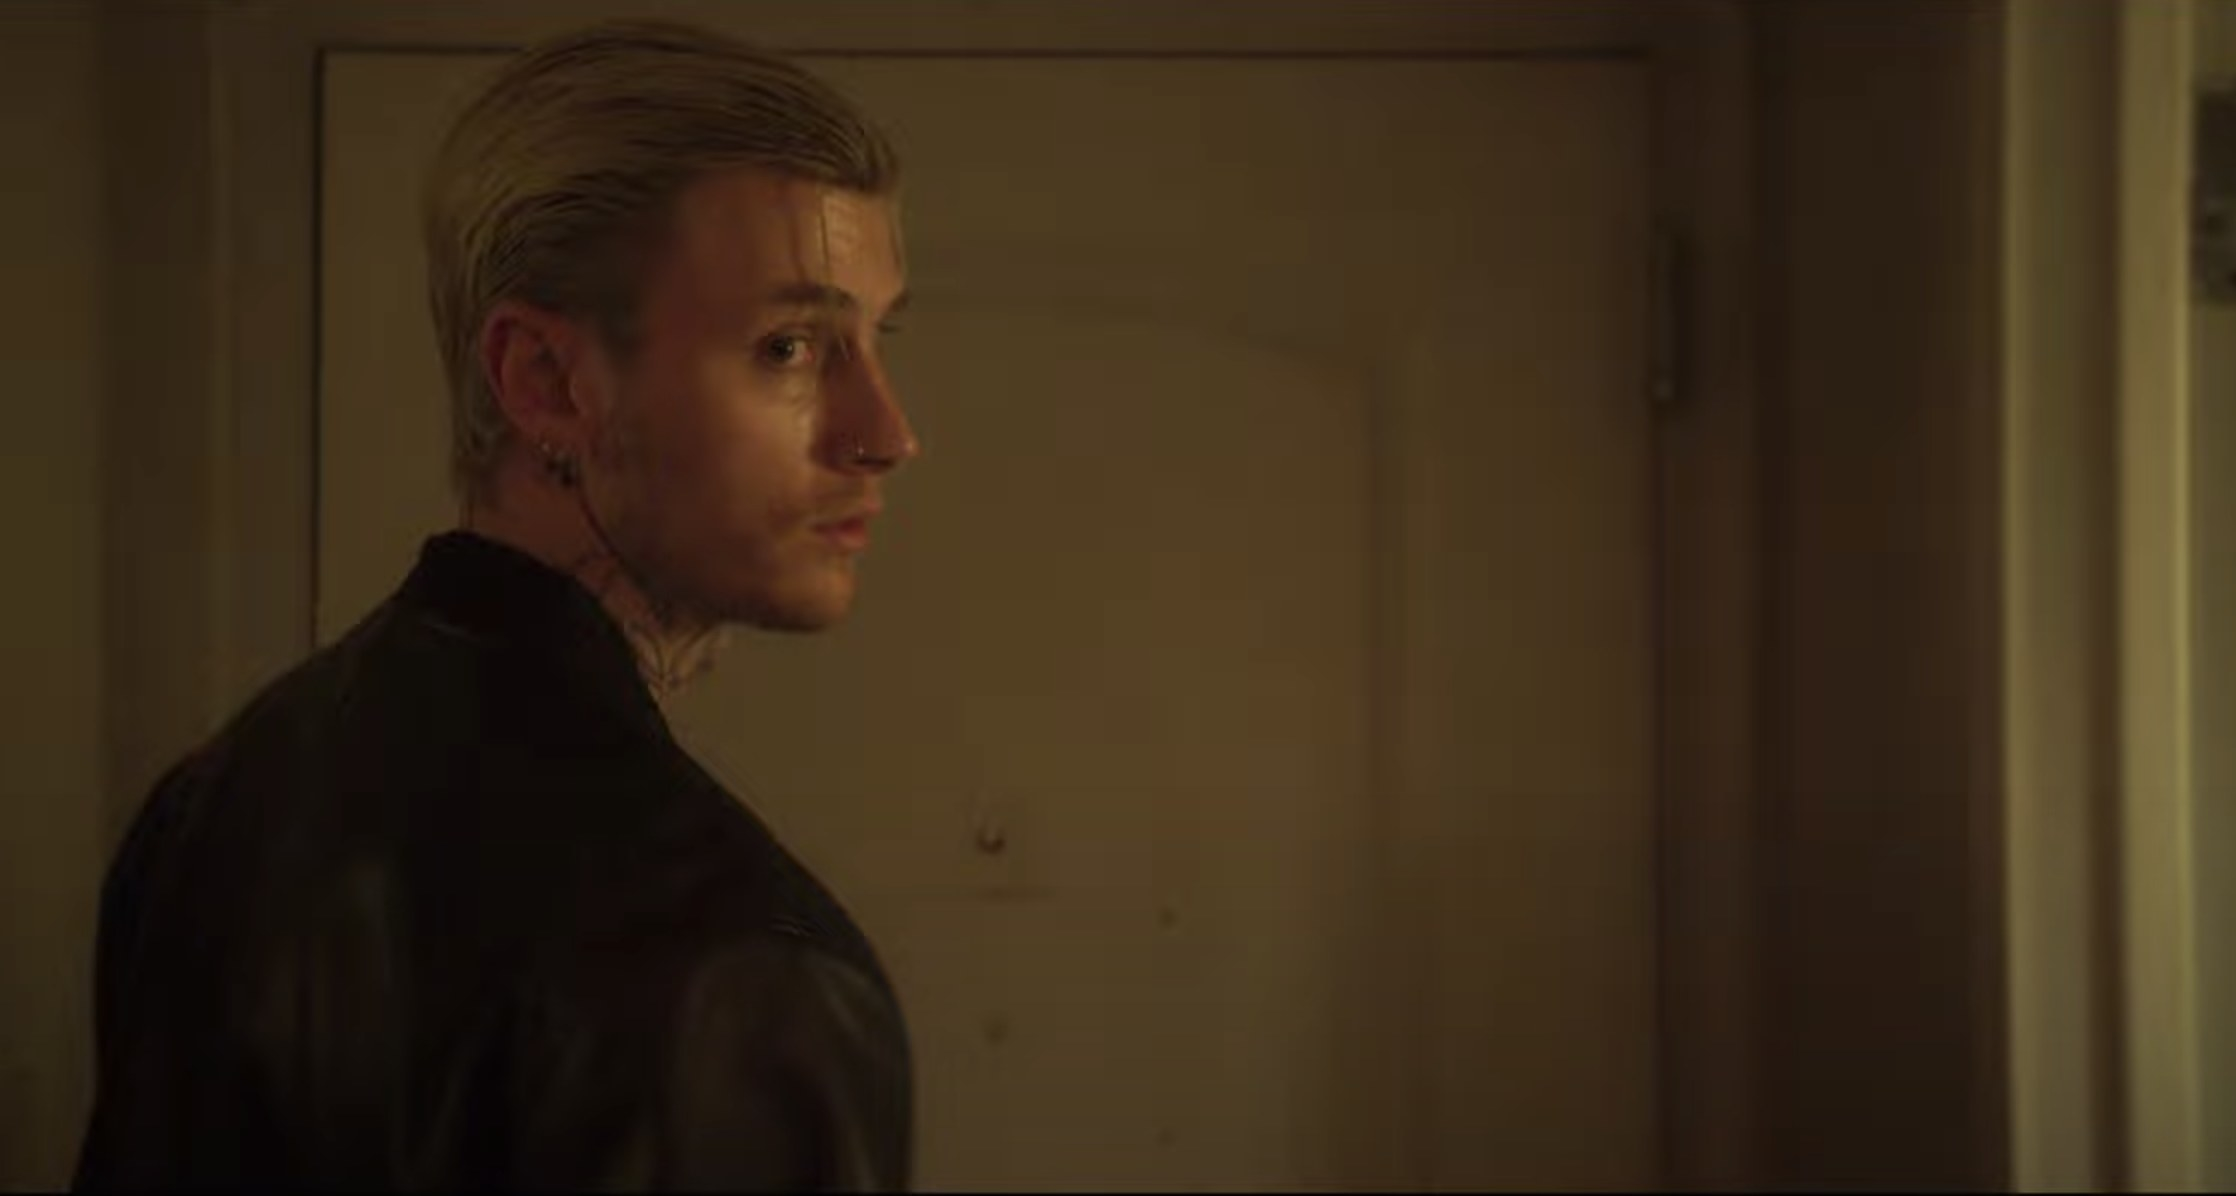 MGK looks back while heading out of a door in a screenshot from the film